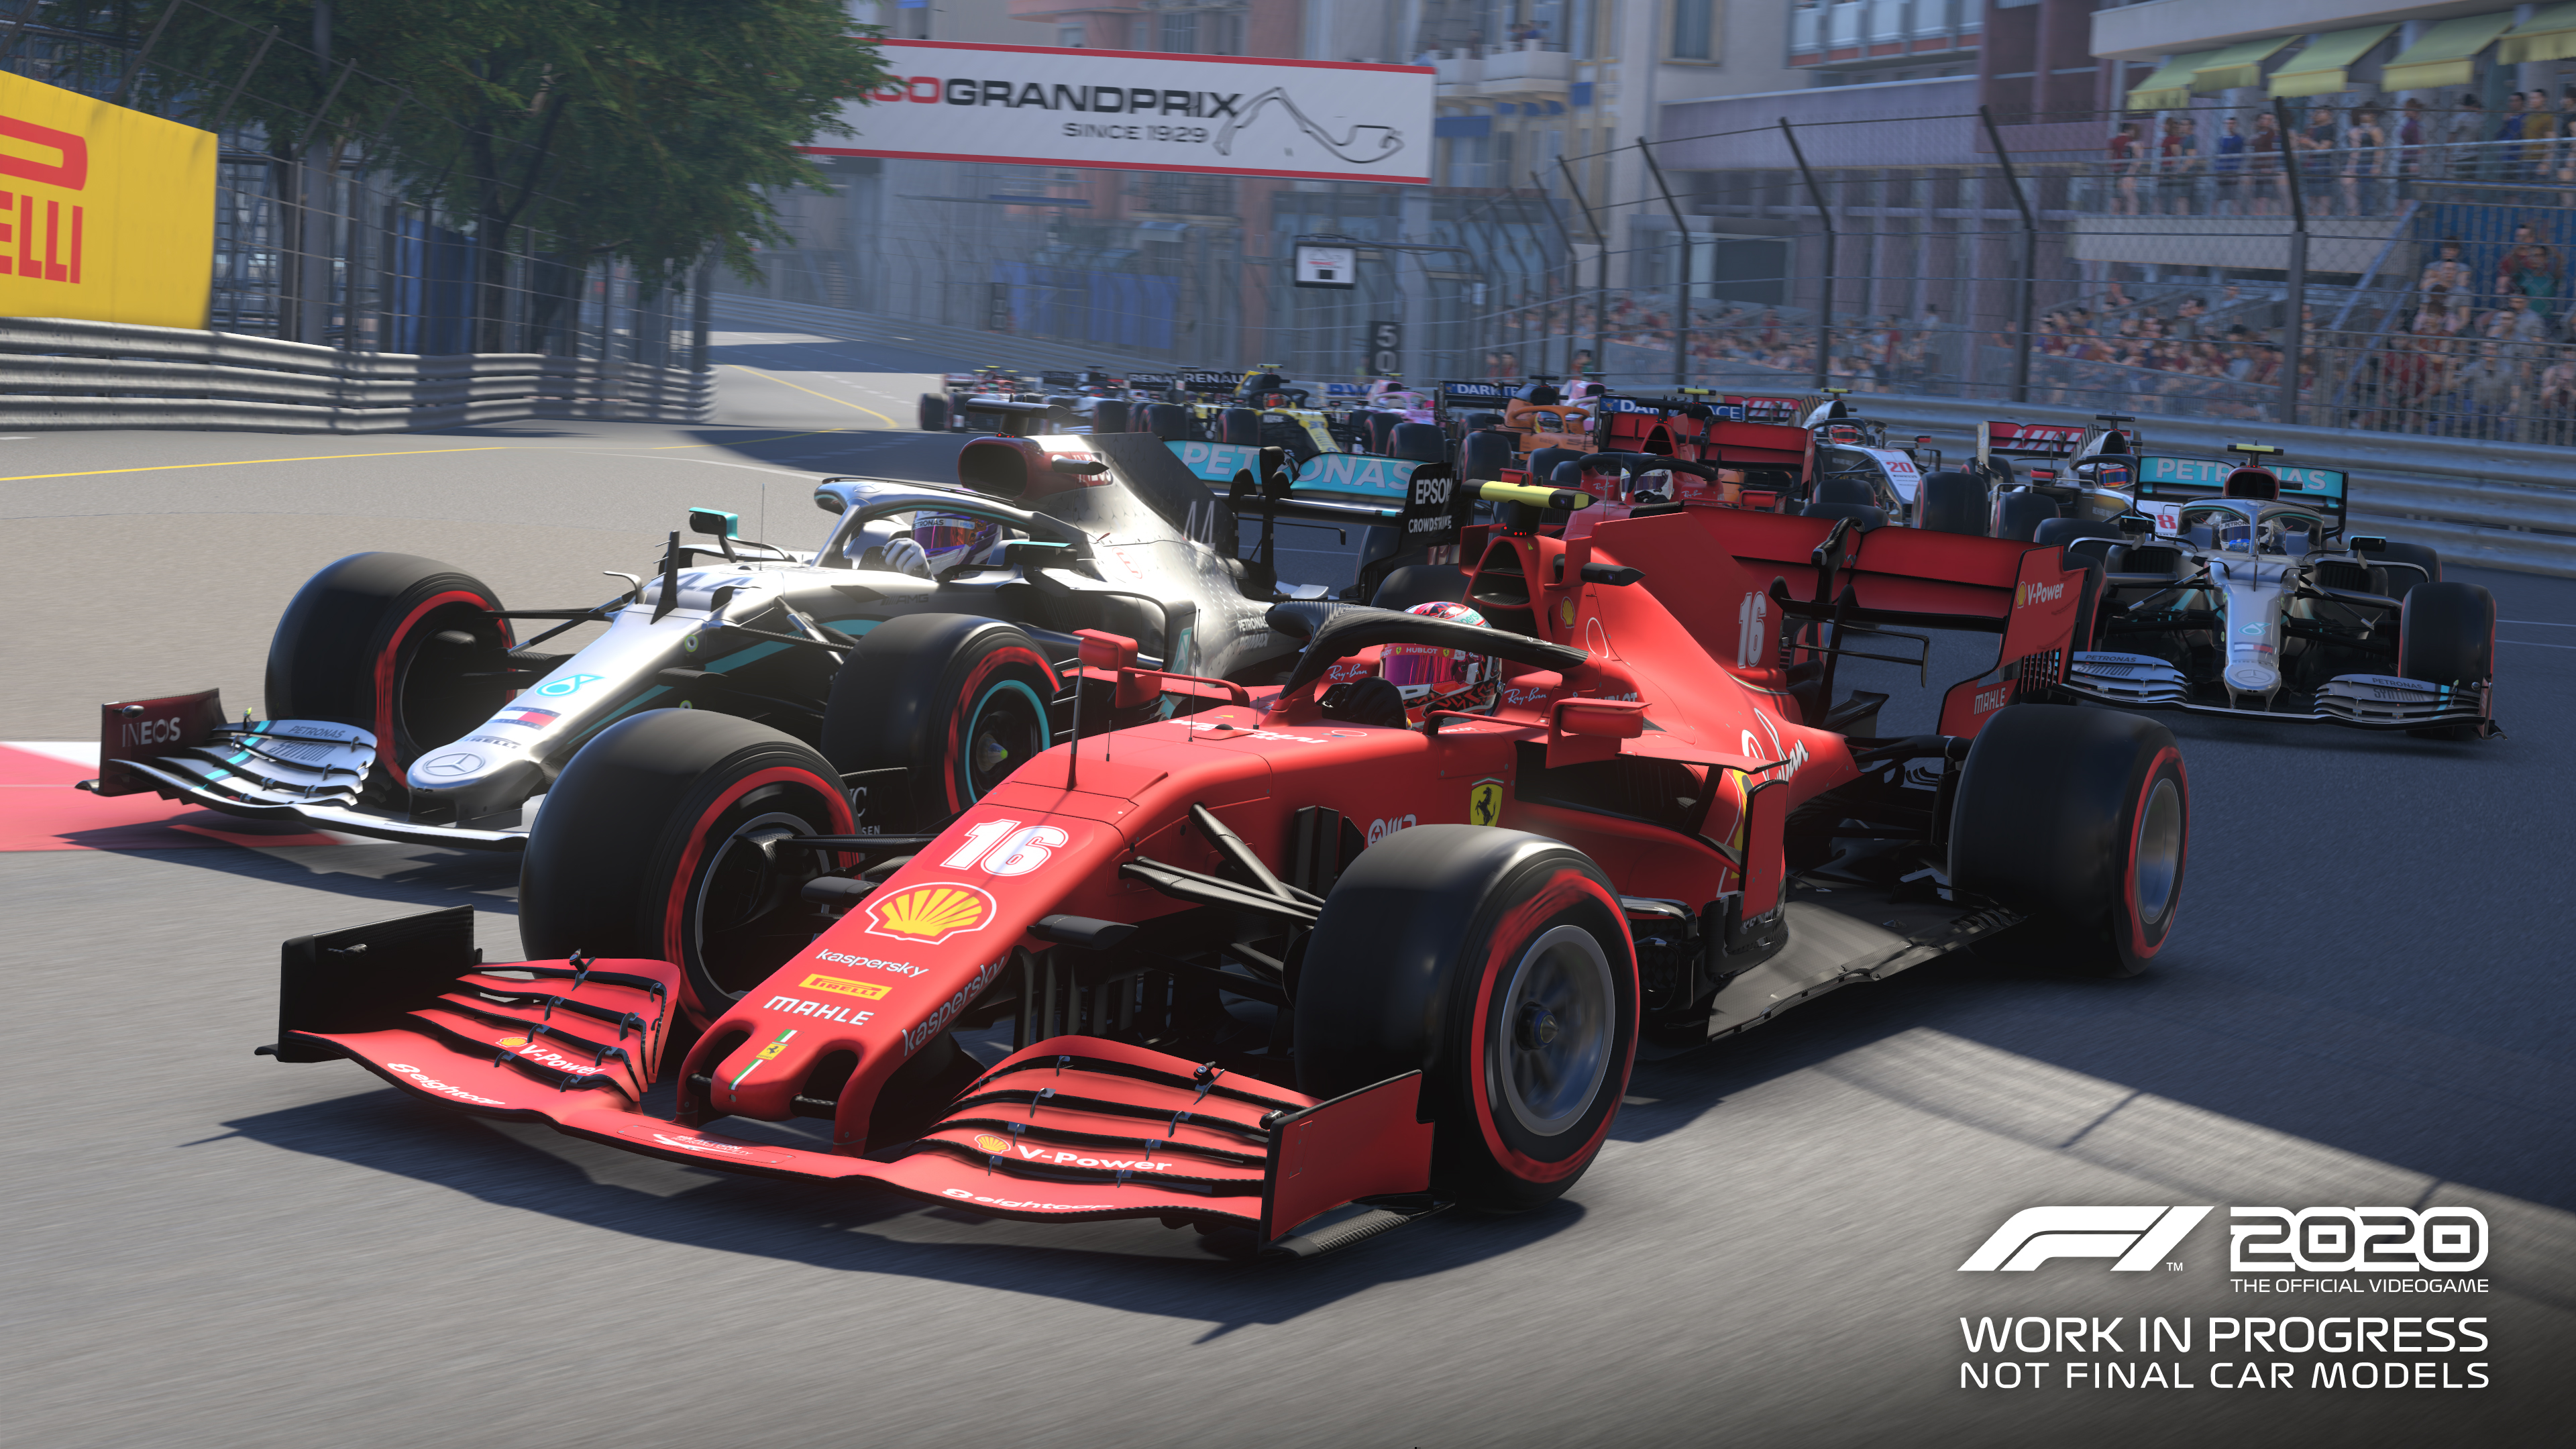 Arcades In Tacoma >> F1 2020 Heads to Monaco in Latest Hot Lap Video - GodisaGeek.com